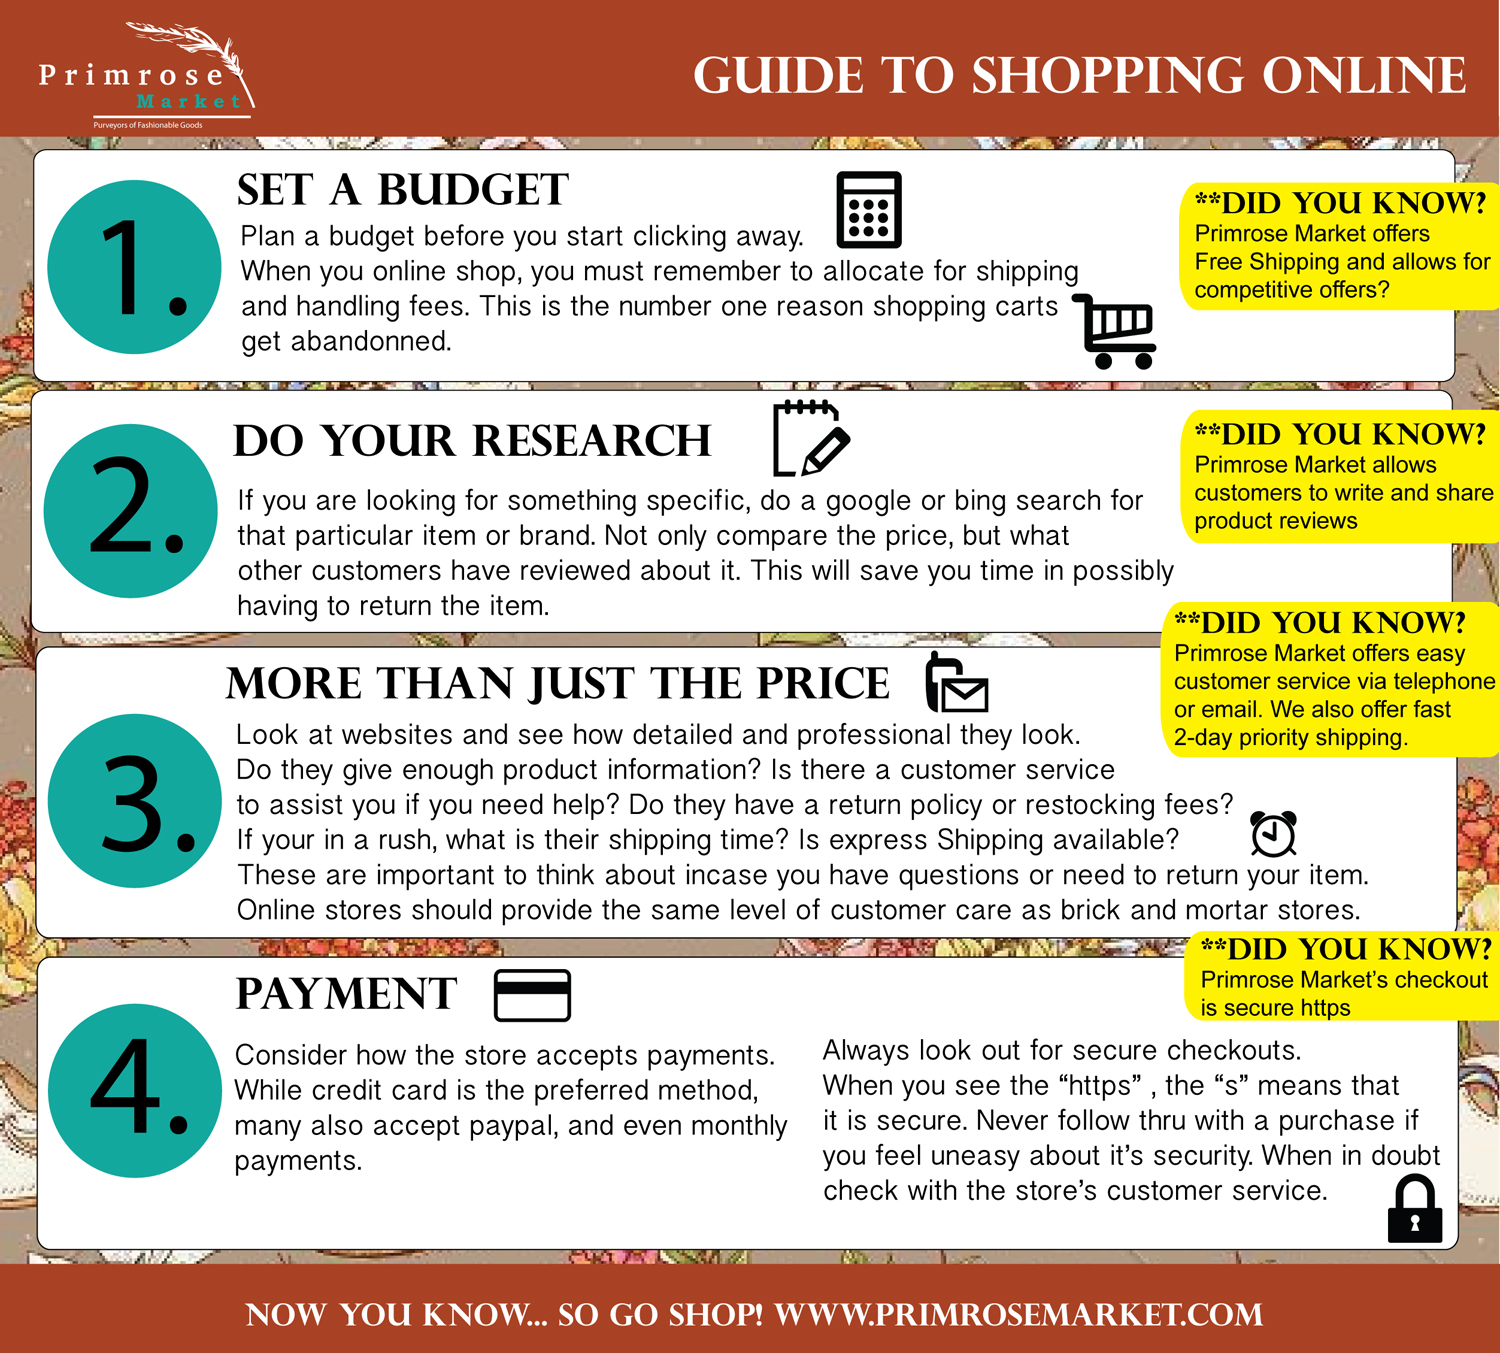 Guide to Shopping Online | Primrose Market